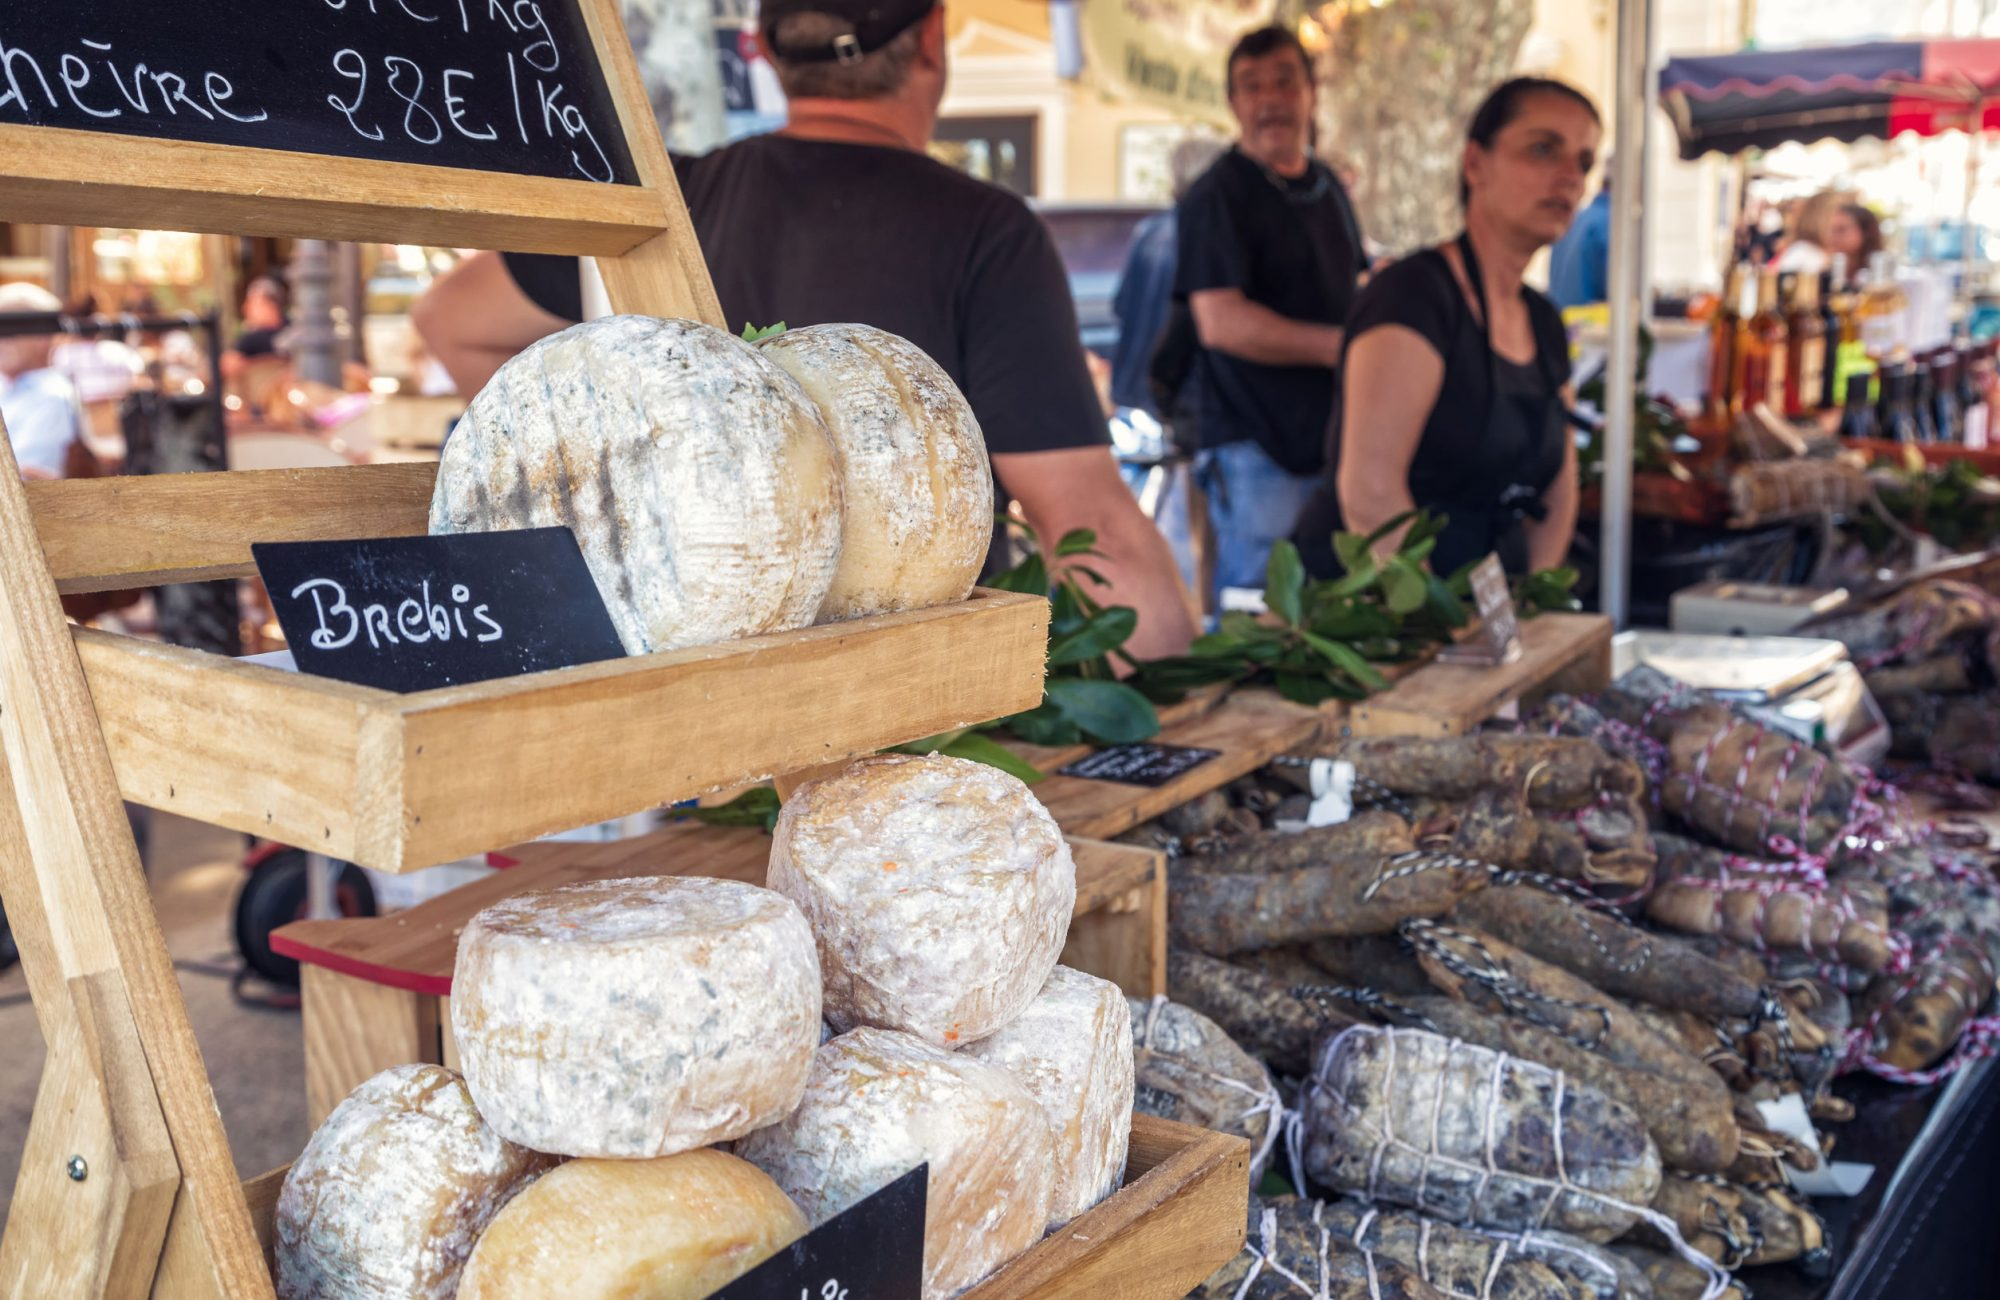 L'Ile Rousse, Corsica - 30th September 2018. Locally made cheeses and cured meats are displayed for sale at an artisan fair in L'Ile Rousse in the Balagne region of Corsica